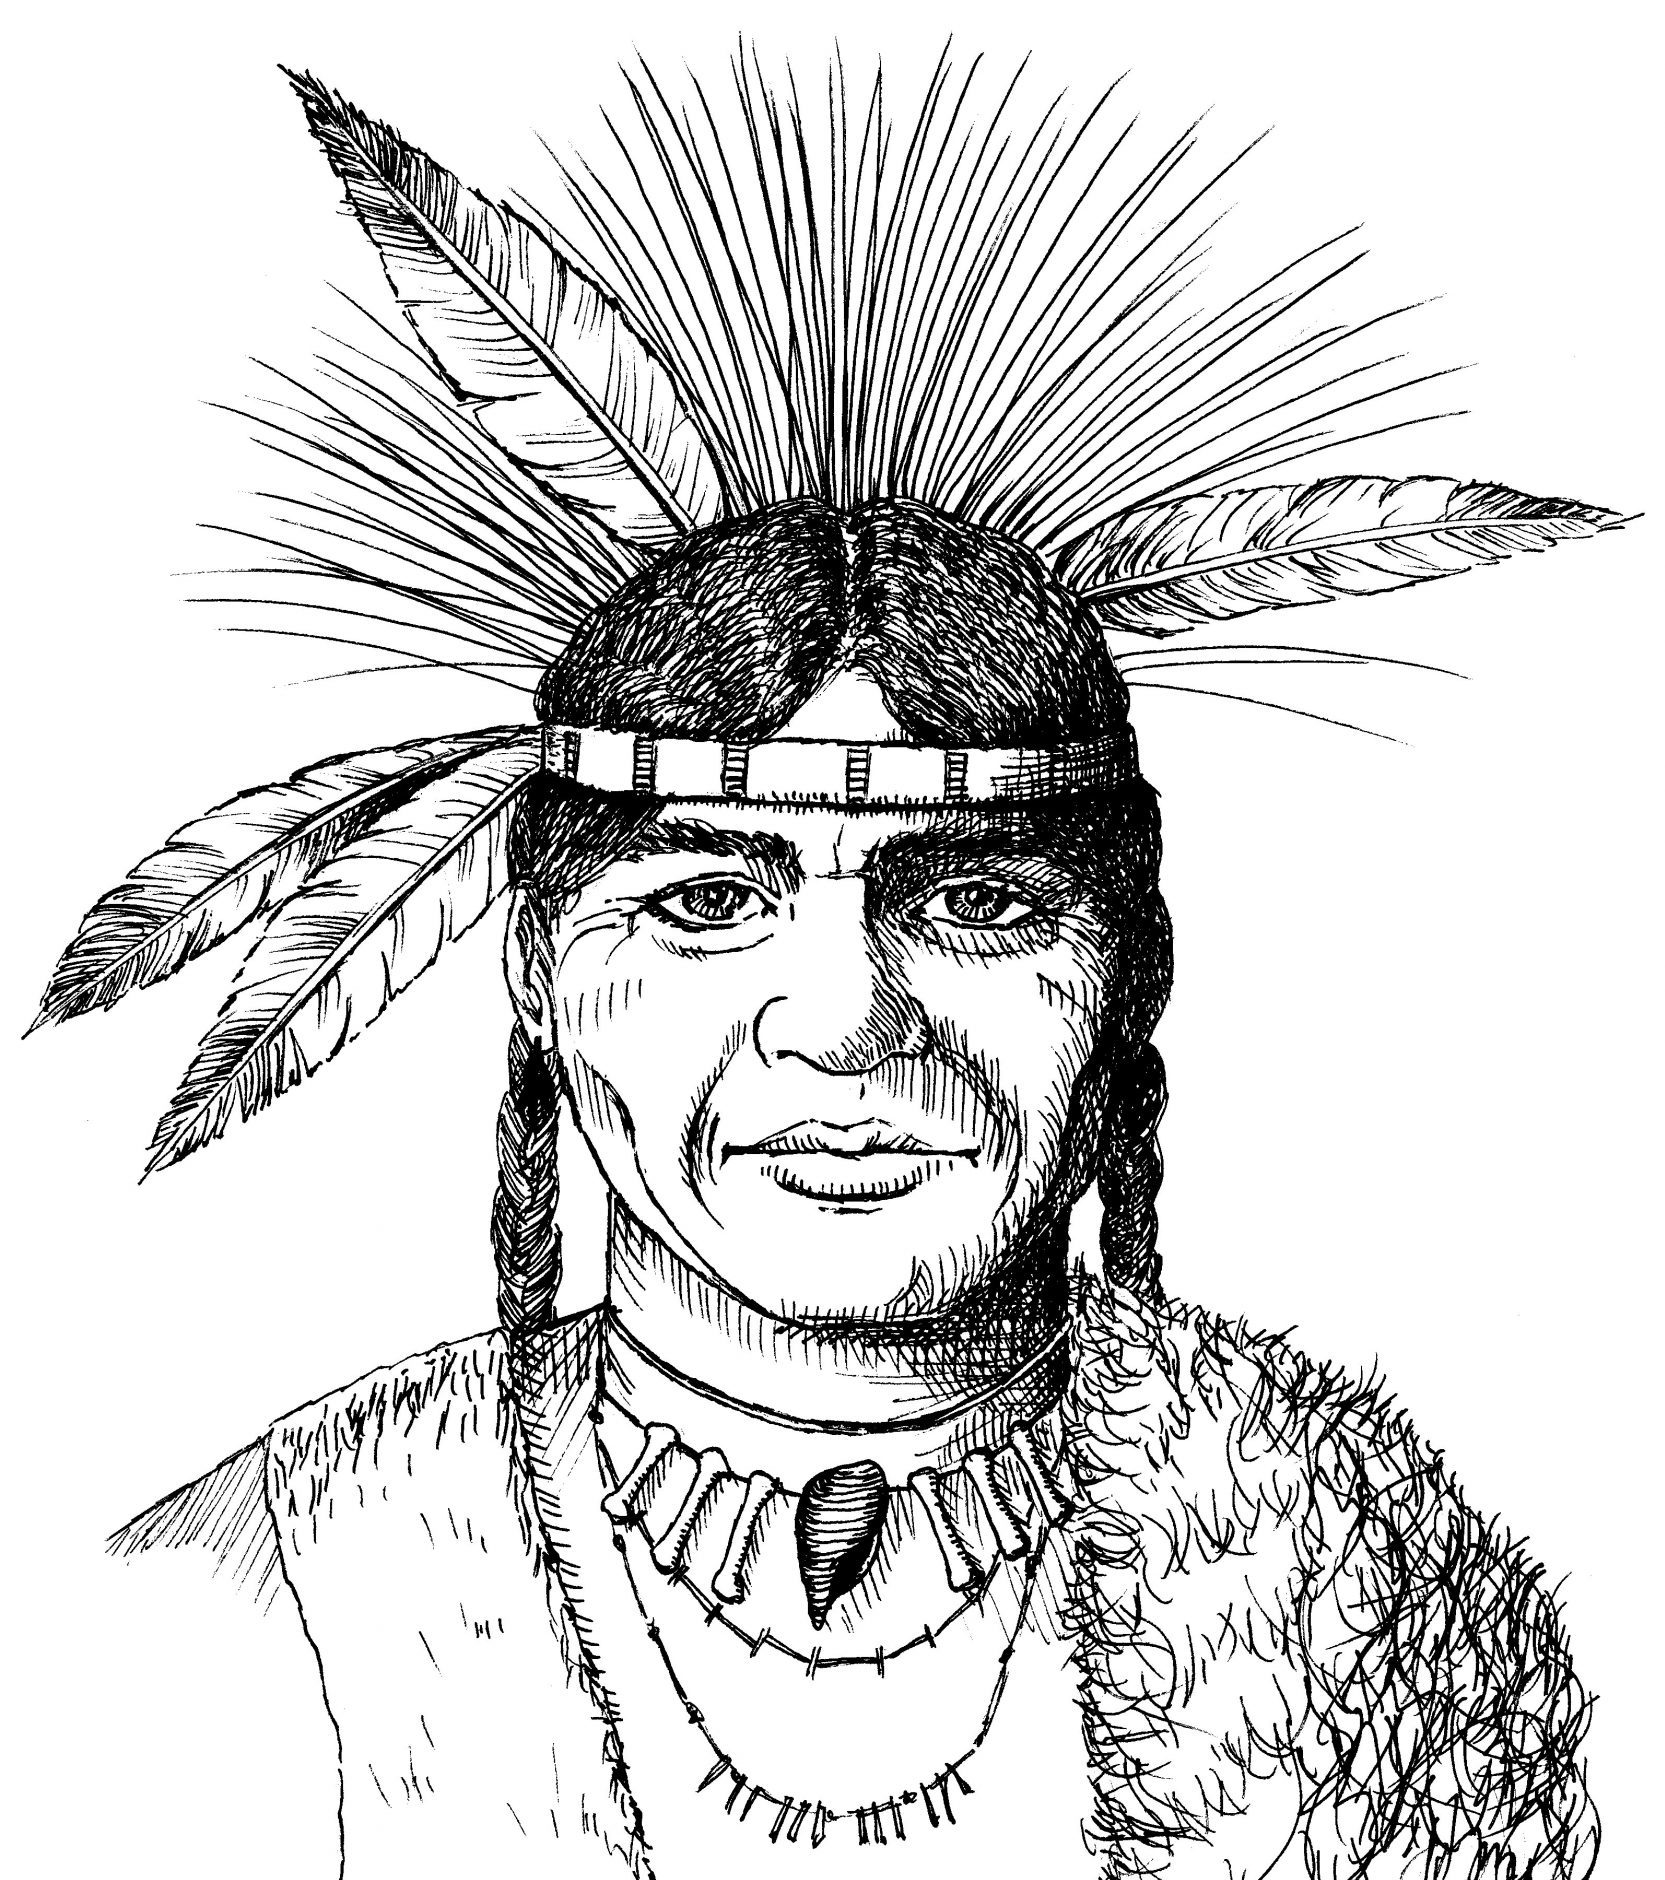 Ink sketch of Chief Massasoit, friend of Pilgrim leader William Bradford of Plymouth Massachusetts.